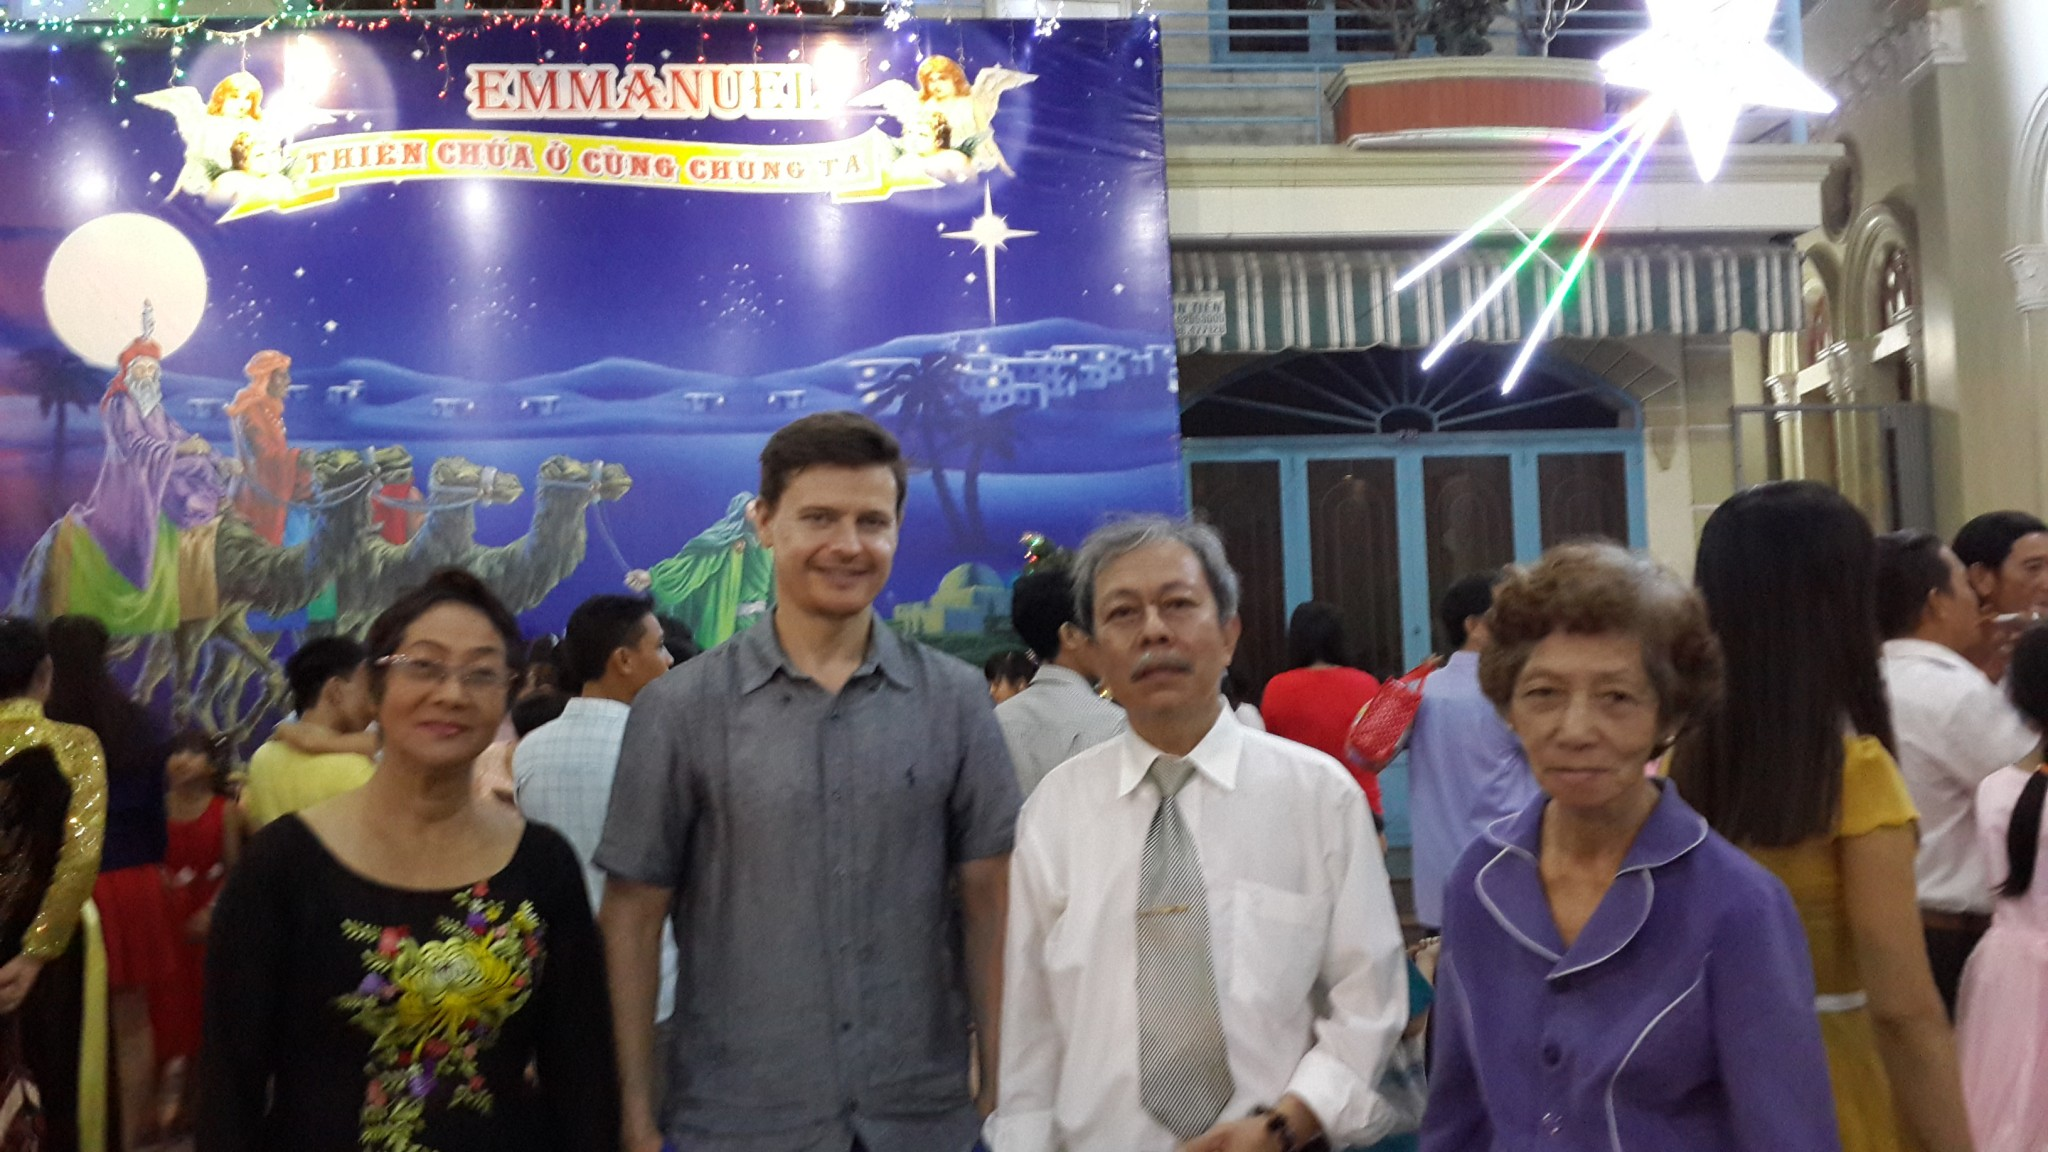 Christmas service at Trinh's parents local church. Left to right - Trinh's Mum, me, Trinh's Dad and Trinh's Aunt (Mum's sister).